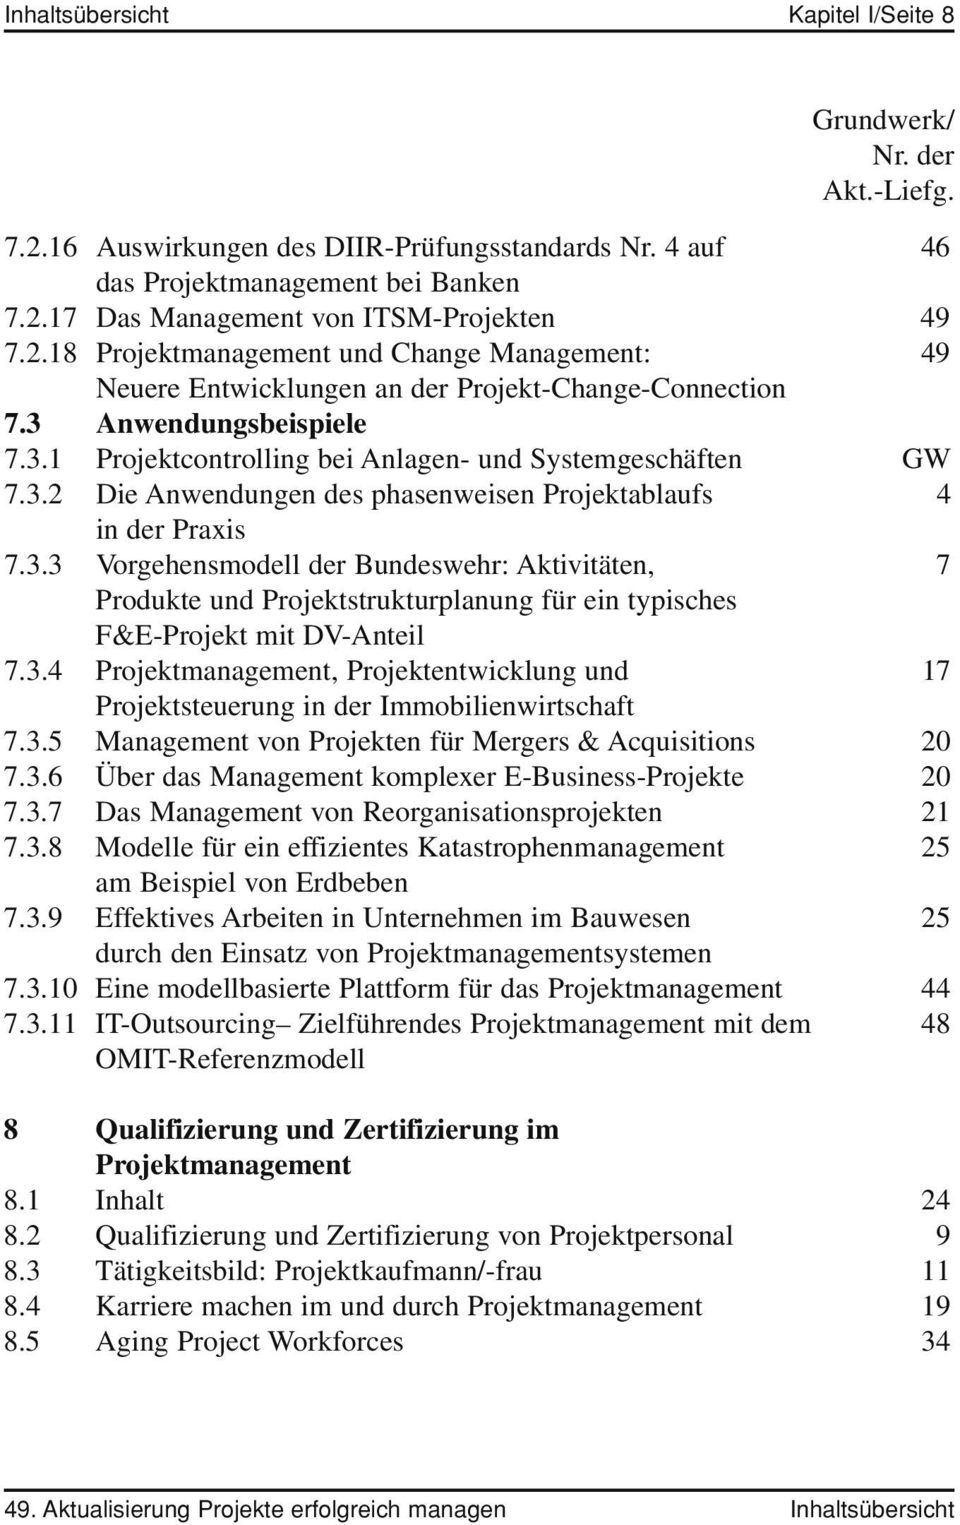 3.4, Projektentwicklung und 17 Projektsteuerung in der Immobilienwirtschaft 7.3.5 Management von Projekten für Mergers & Acquisitions 20 7.3.6 Über das Management komplexer E-Business-Projekte 20 7.3.7 Das Management von Reorganisationsprojekten 21 7.